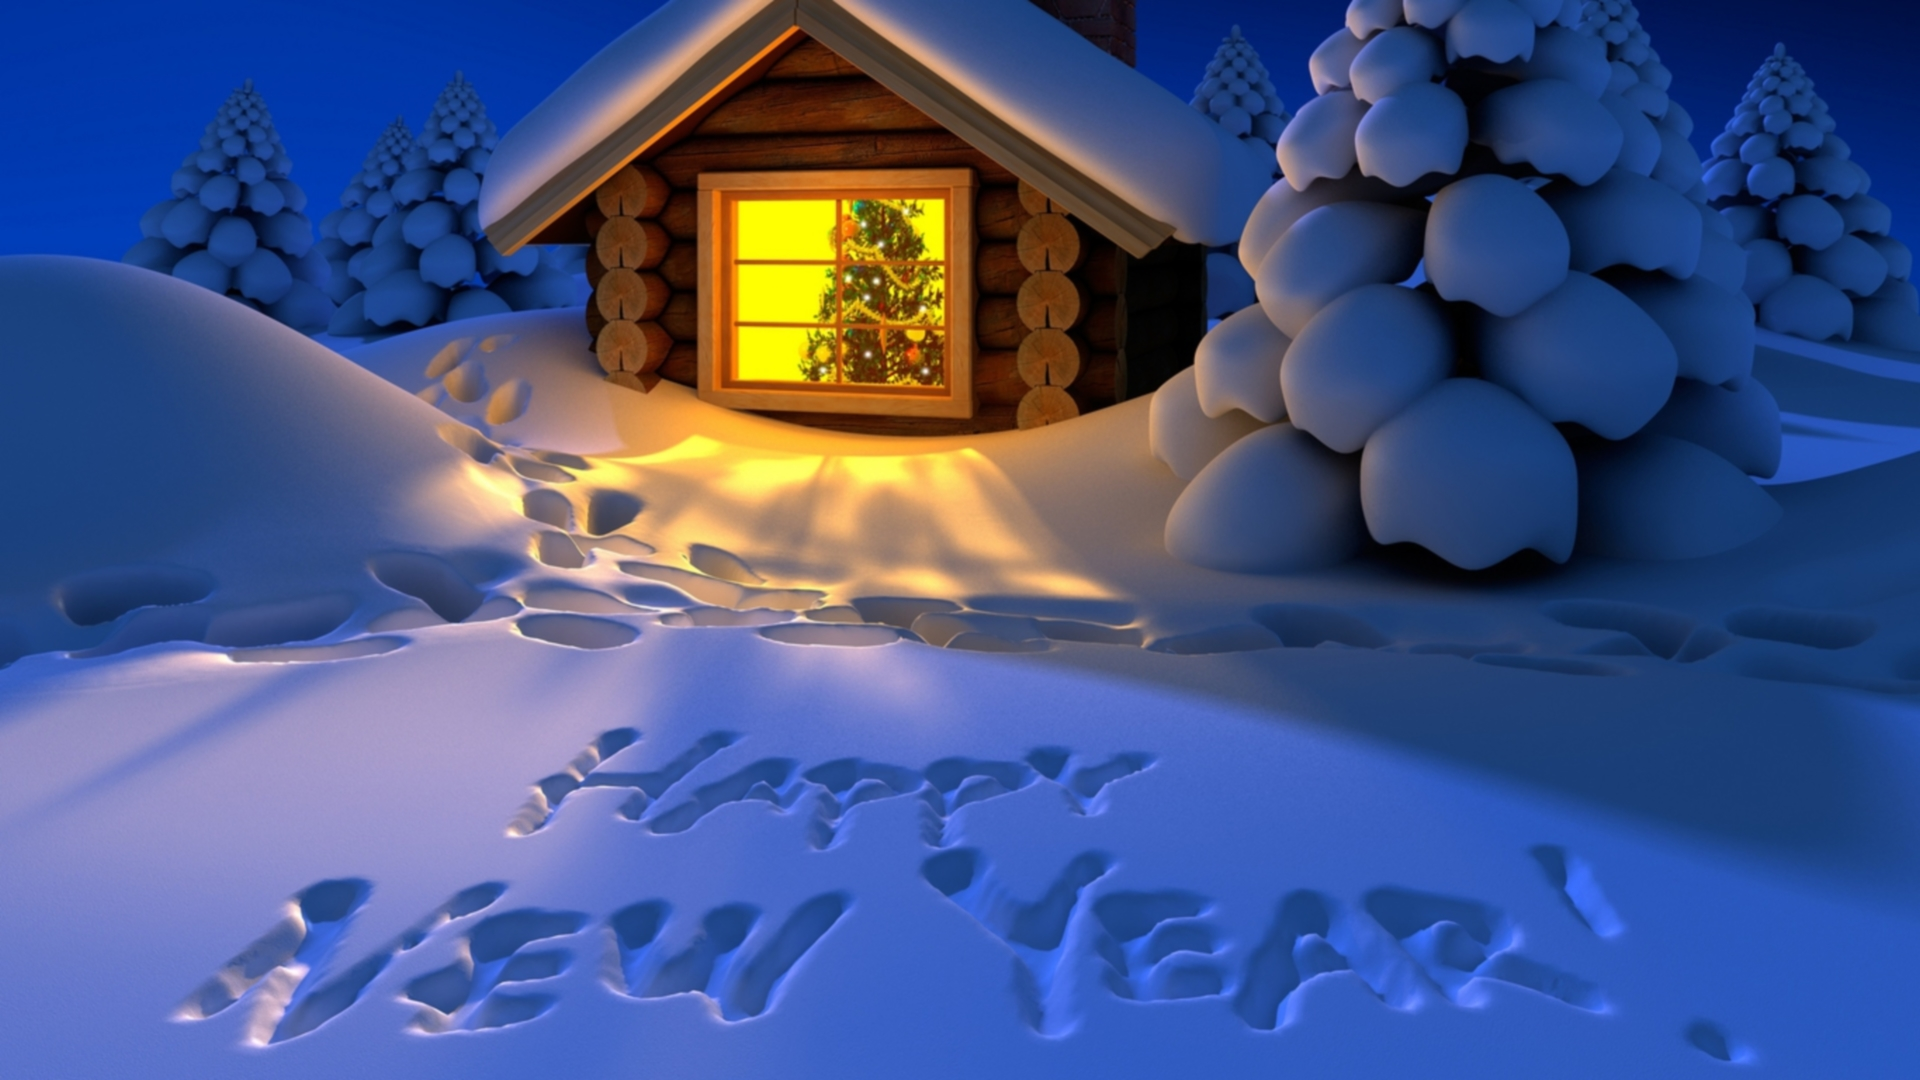 40 New Year 2014 Wallpapers | New Year 2014 Backgrounds